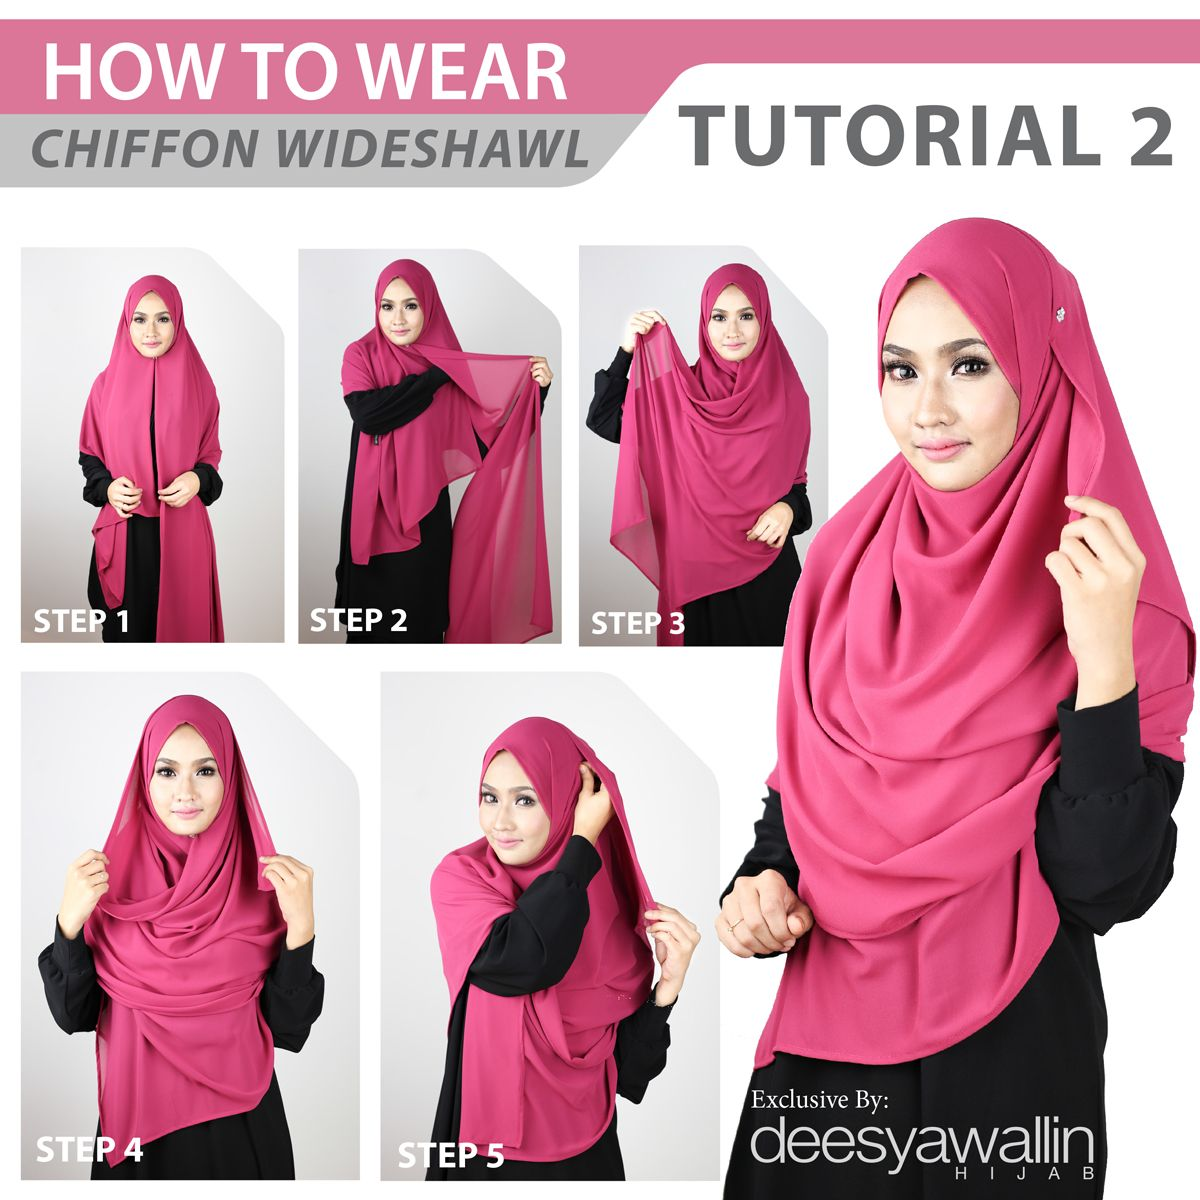 Wide Shawl Tutorials Hijab Tutorials Pinterest Shawl And